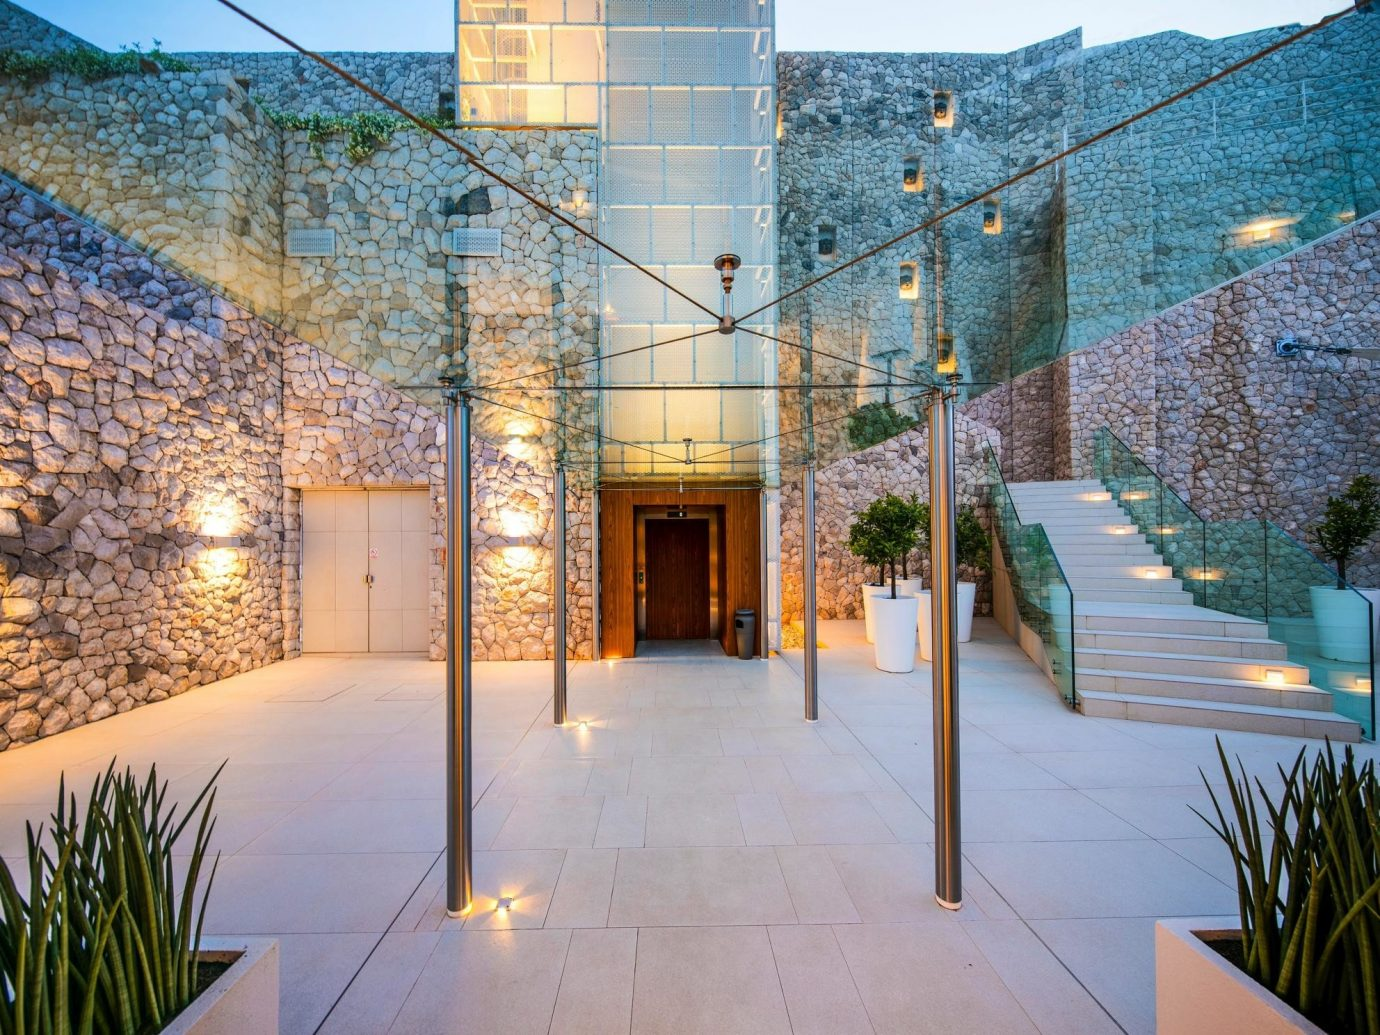 Hotels outdoor house building Architecture Courtyard neighbourhood estate home facade professional lighting interior design plaza Lobby